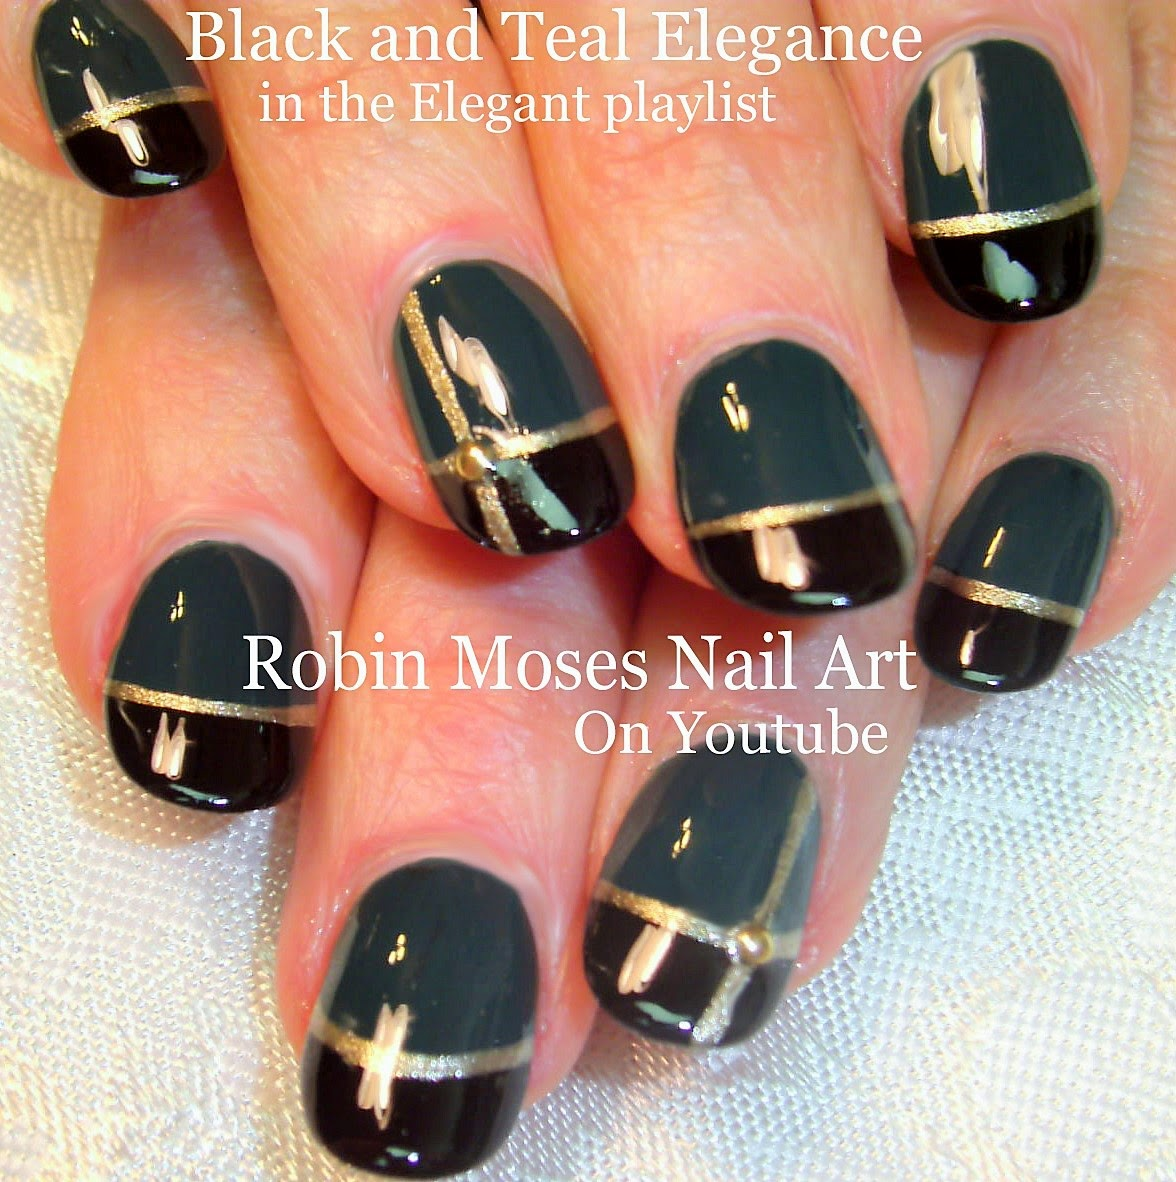 Robin moses nail art nail art elegant nail art teal nails nail art elegant nail art teal nails nails striped nails easynailart easy nail art easy nails beautiful nails teal and black nails prinsesfo Choice Image